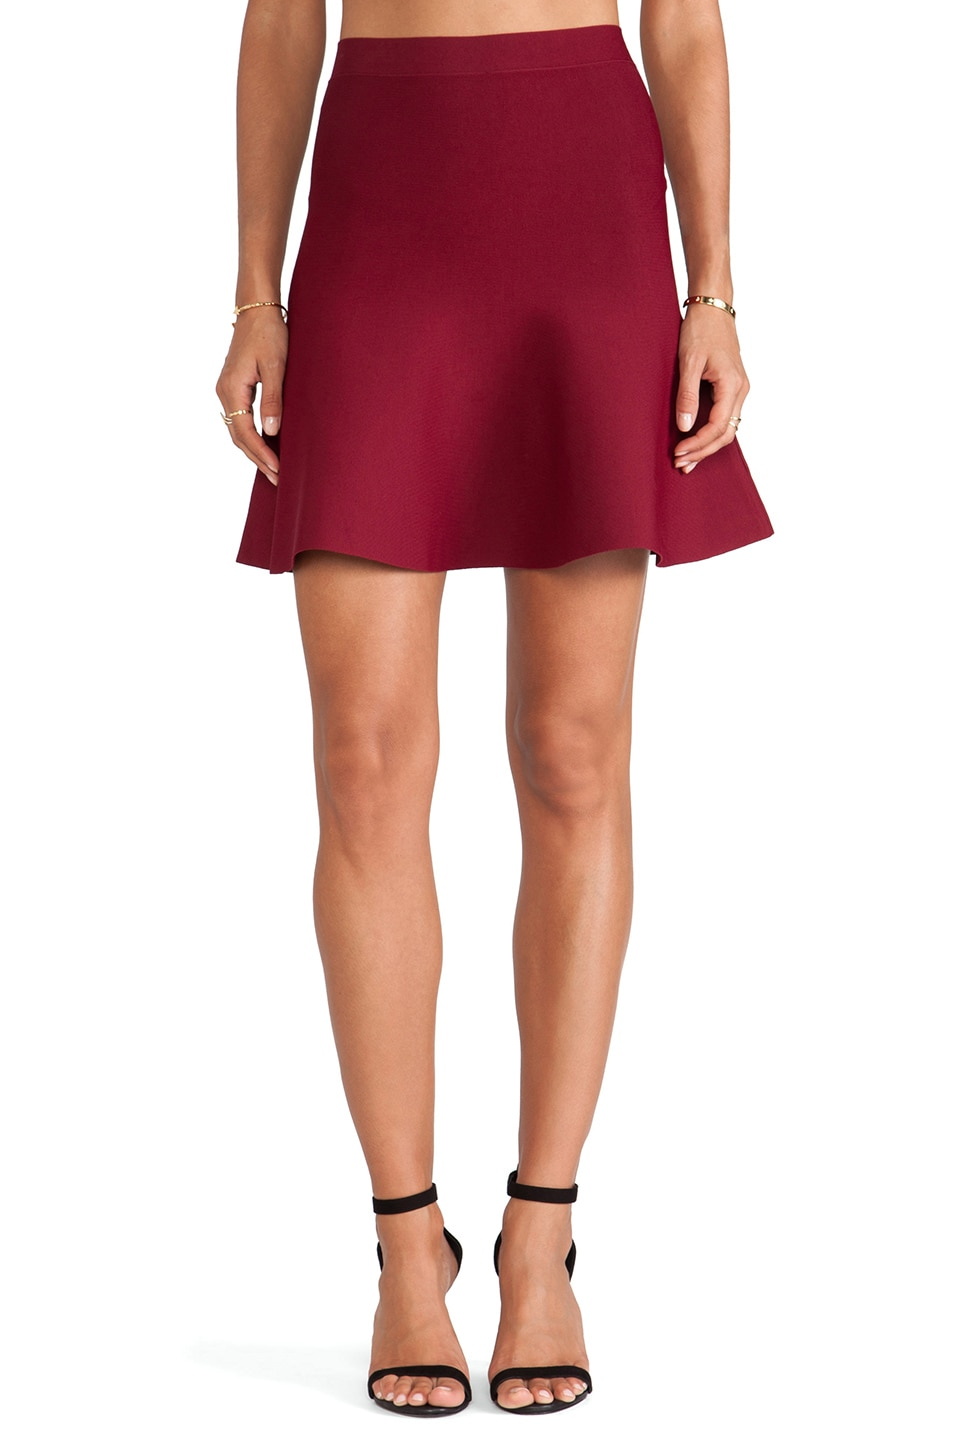 BCBGMAXAZRIA Ingrid Circle Skirt in Deep Cranberry